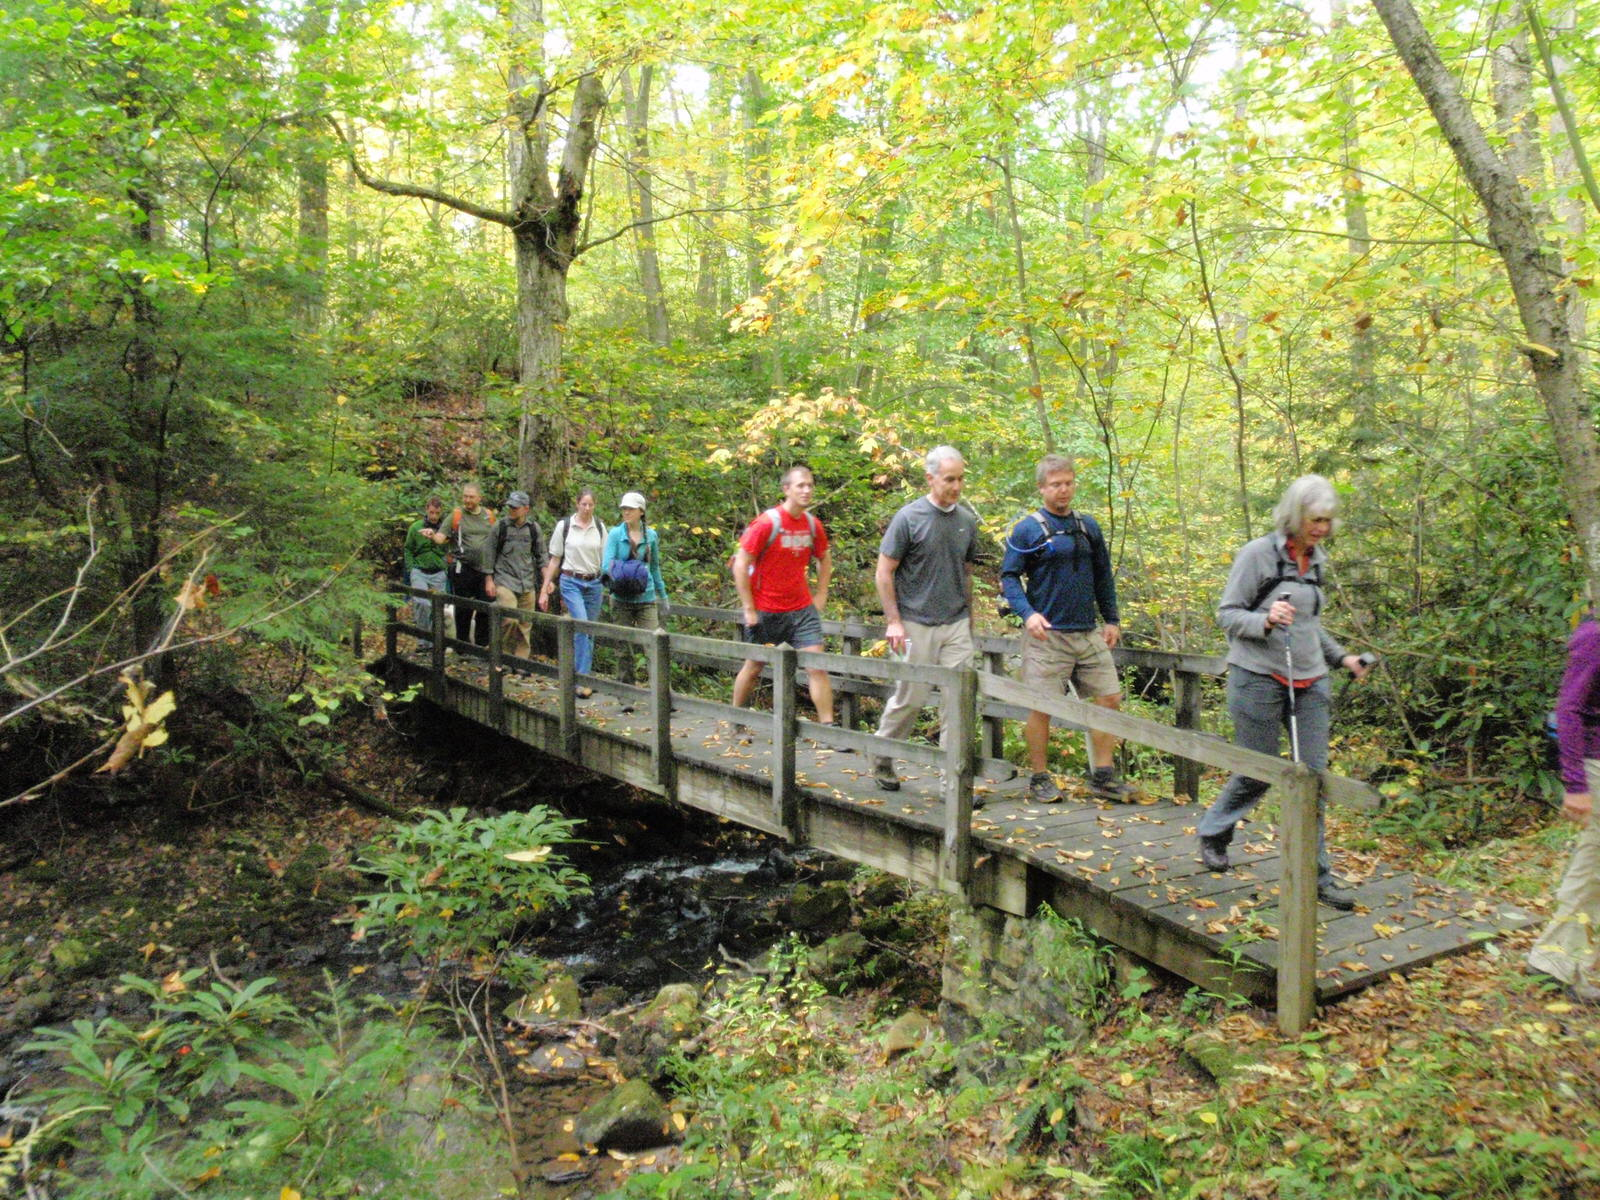 photo: On the trail. Photo by Western Penn. Conservancy.